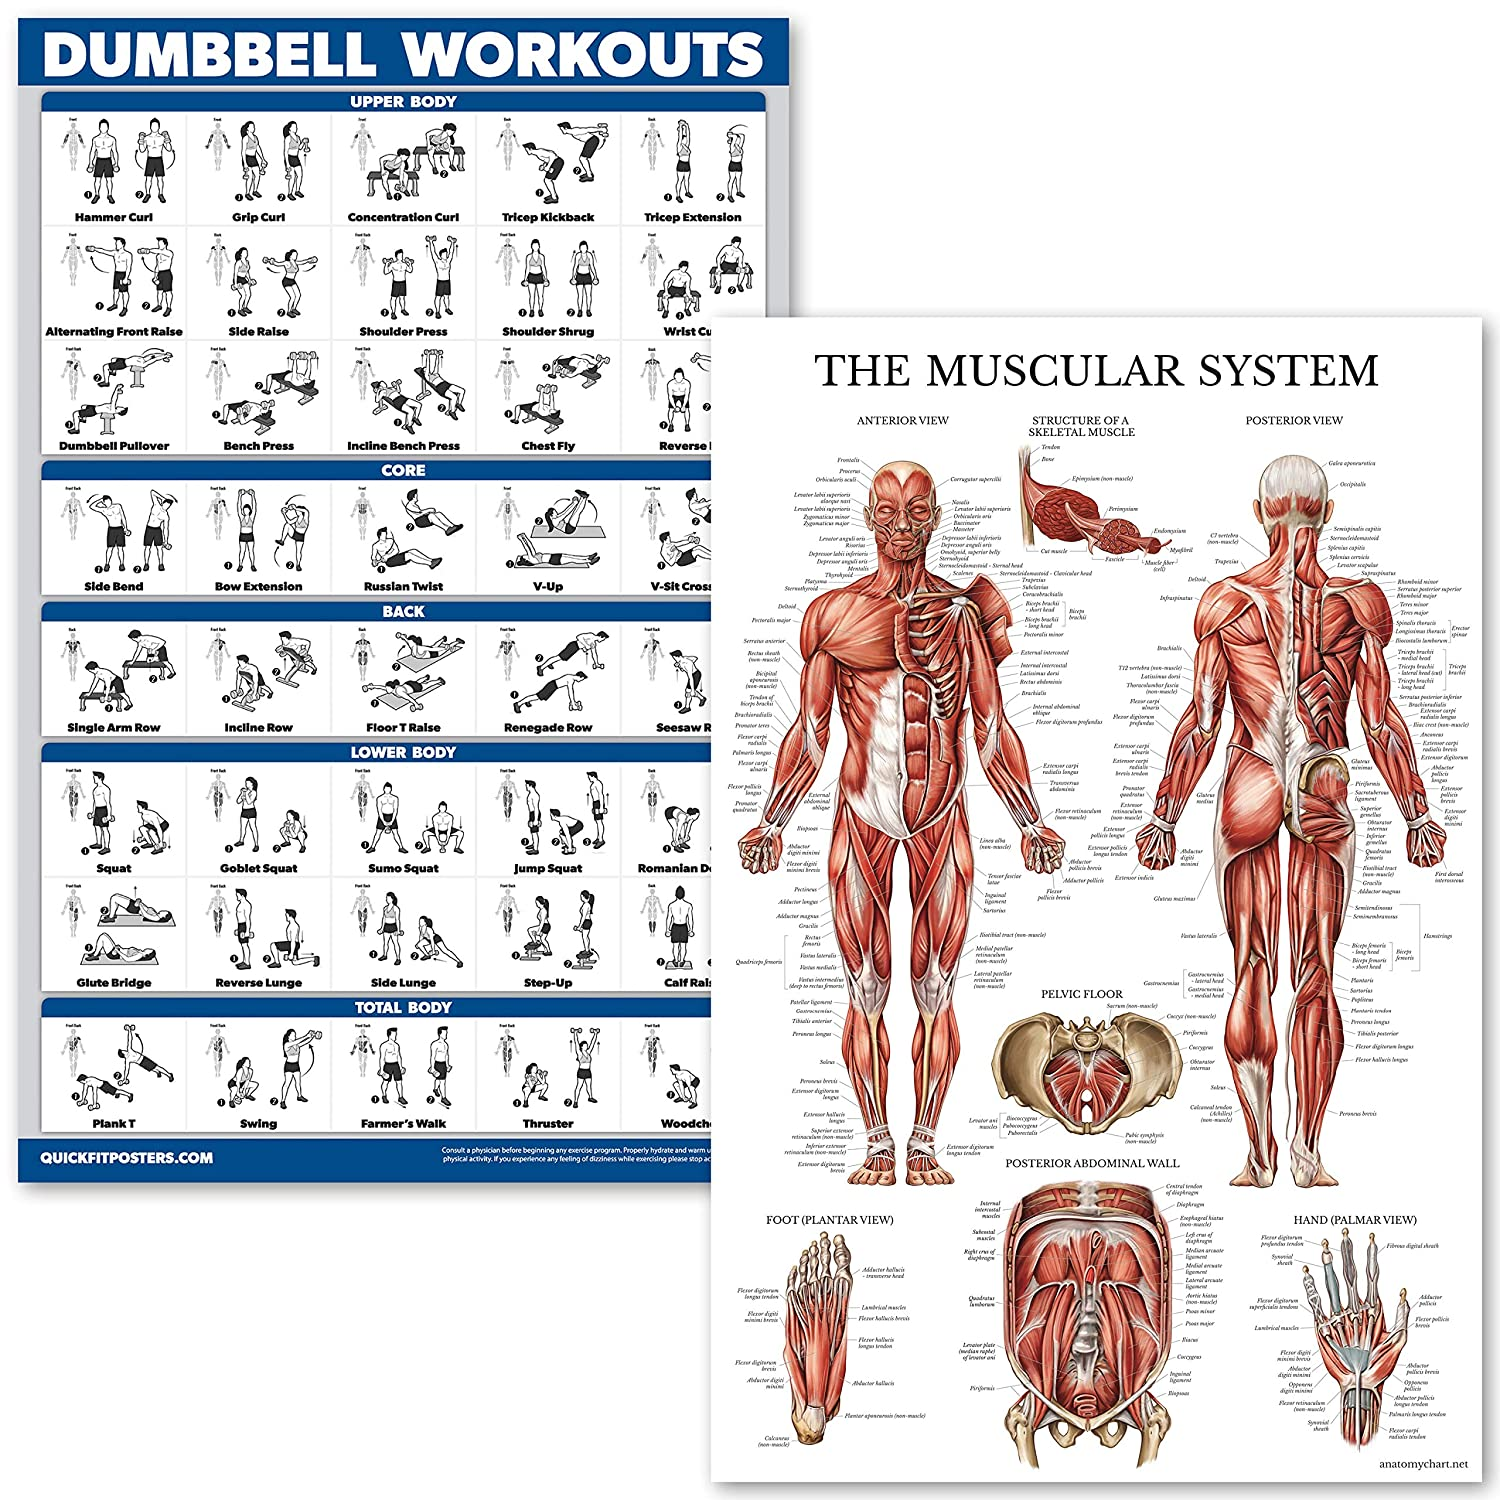 Amazon Quickfit Dumbell Workouts And Muscular System Anatomy